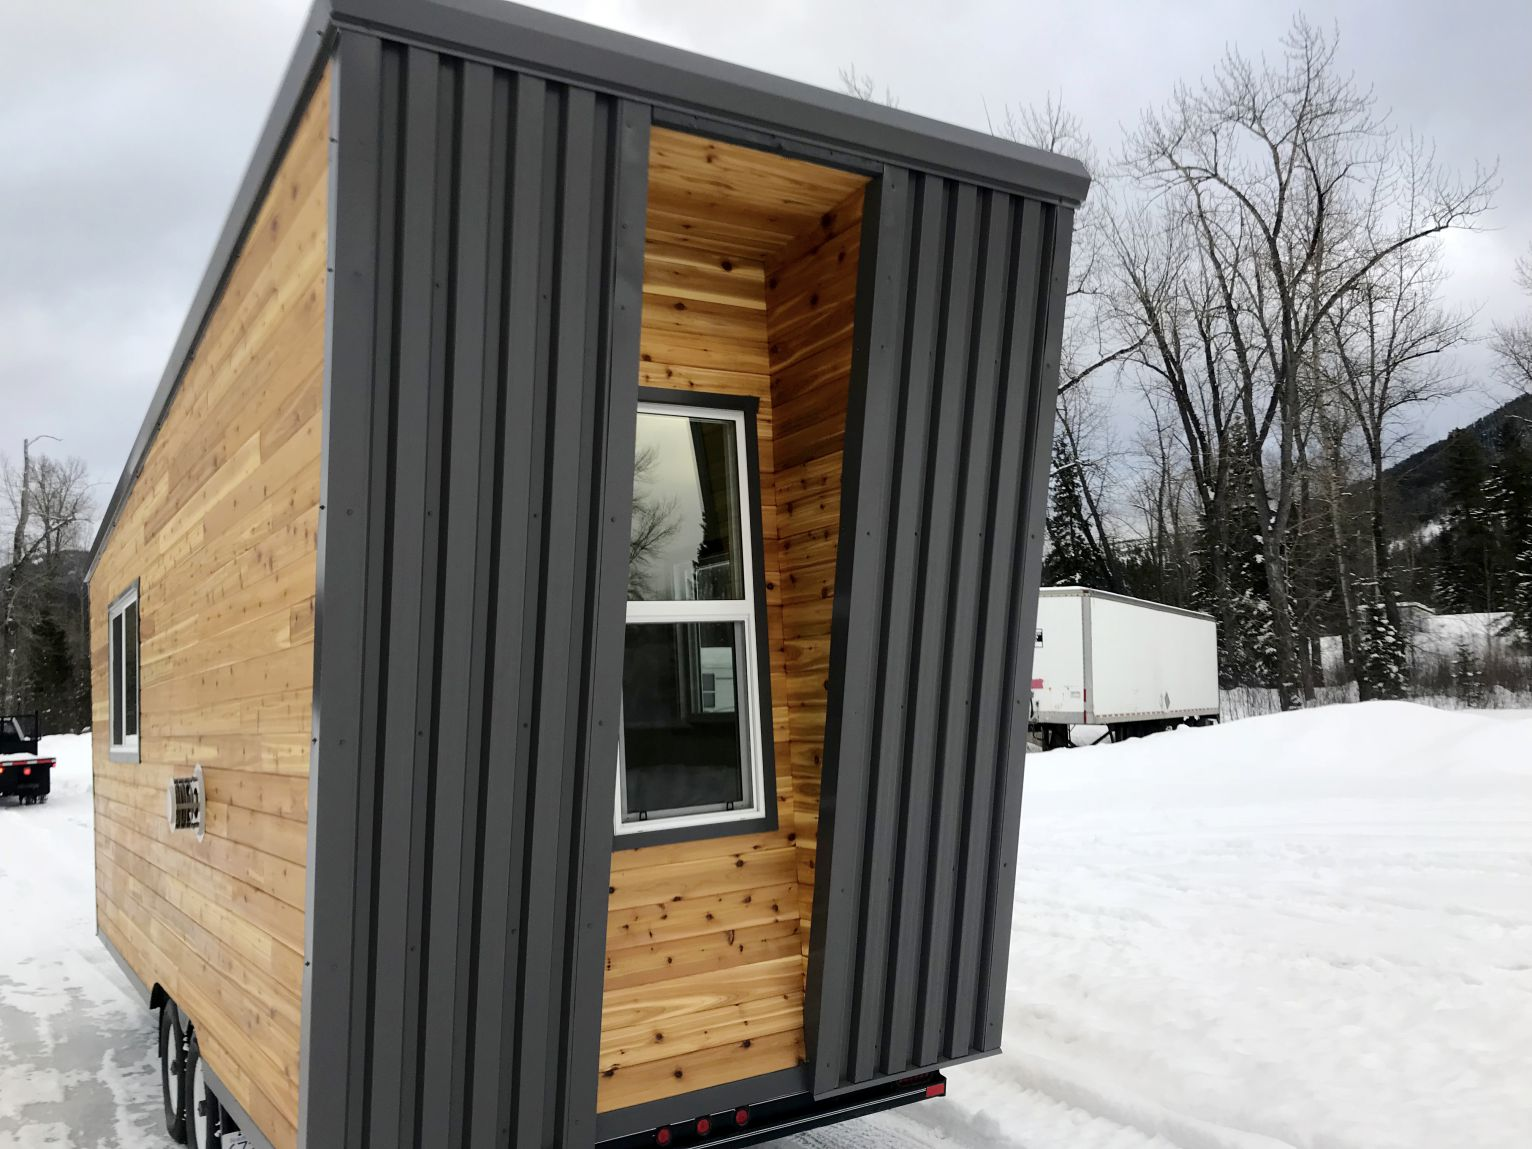 4a547c62e2 Hummingbird Micro Homes has just completed a mobile real estate sales  center. We will also post pictures soon of a mobile office which is almost  complete.